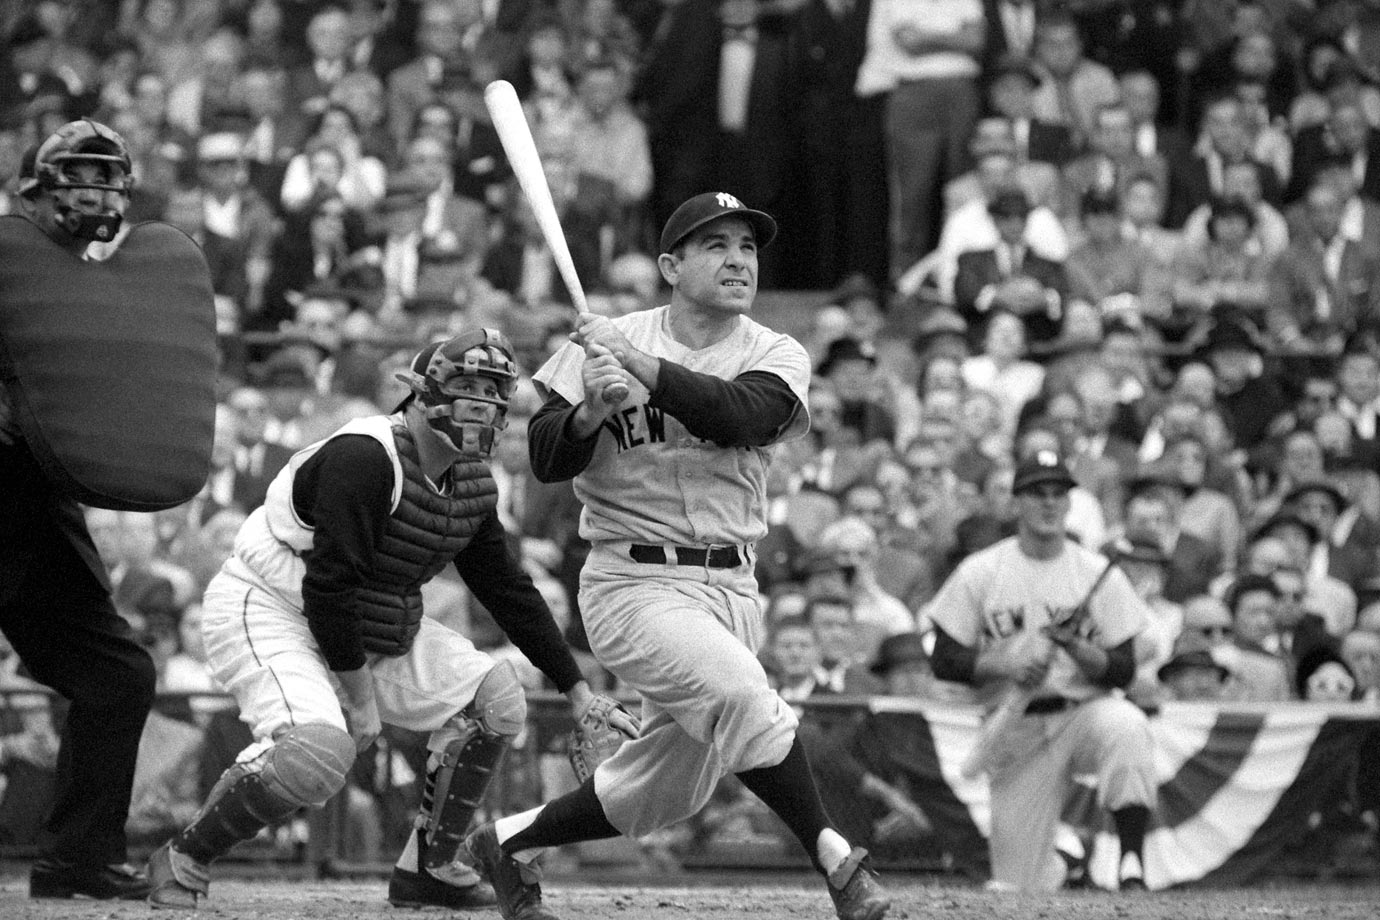 Oct. 6, 1960 — World Series, Game 1